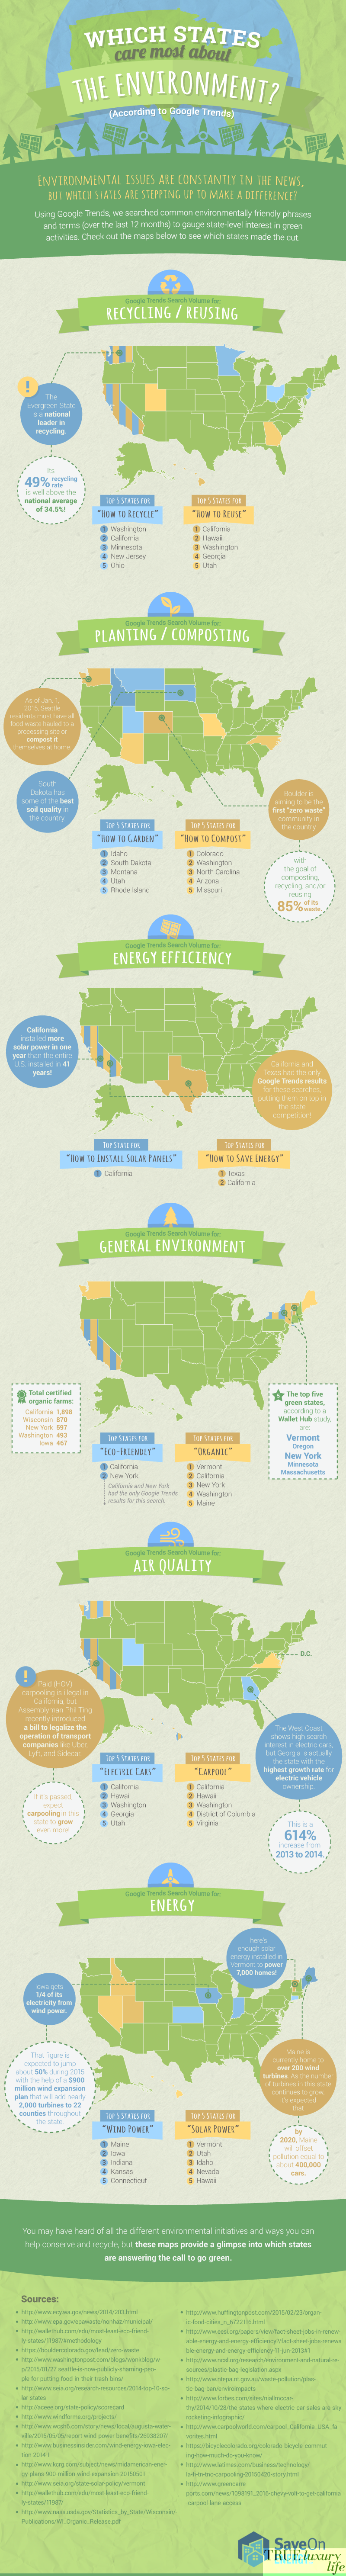 infographic, states, ranking, environment infographic